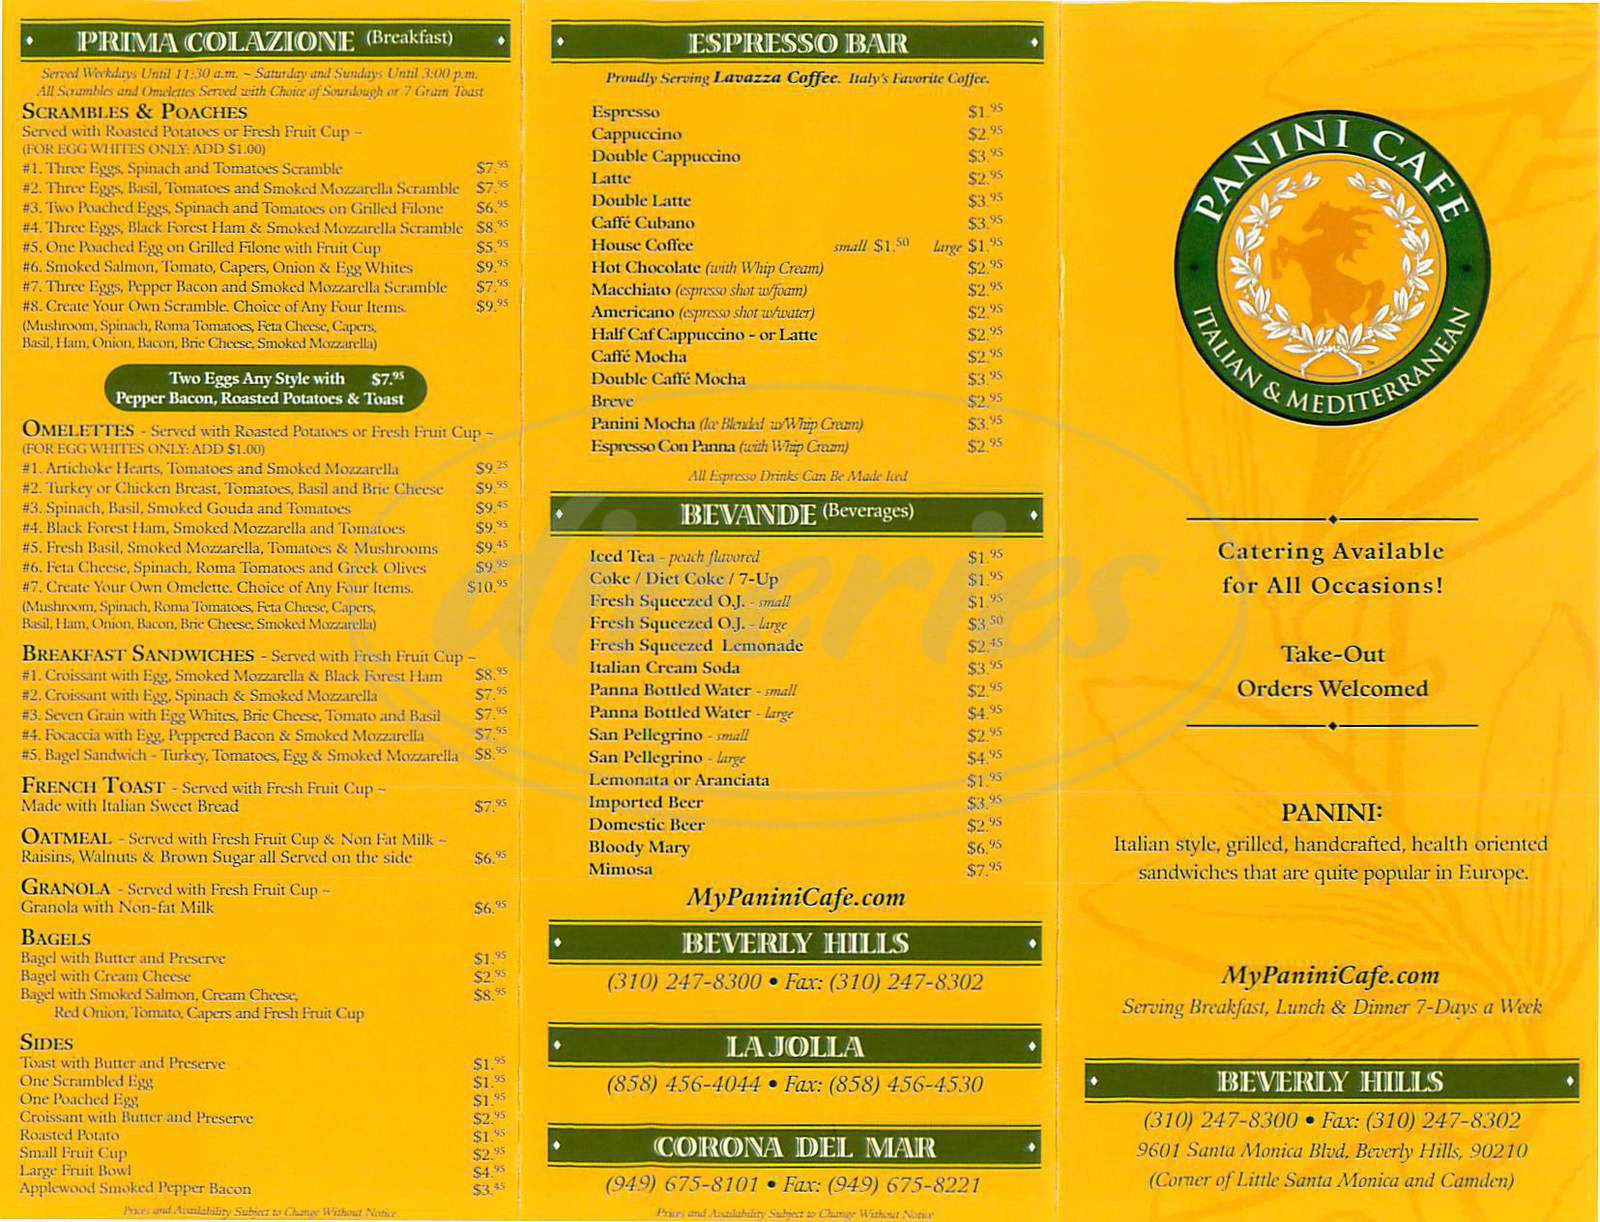 menu for Panini Cafe